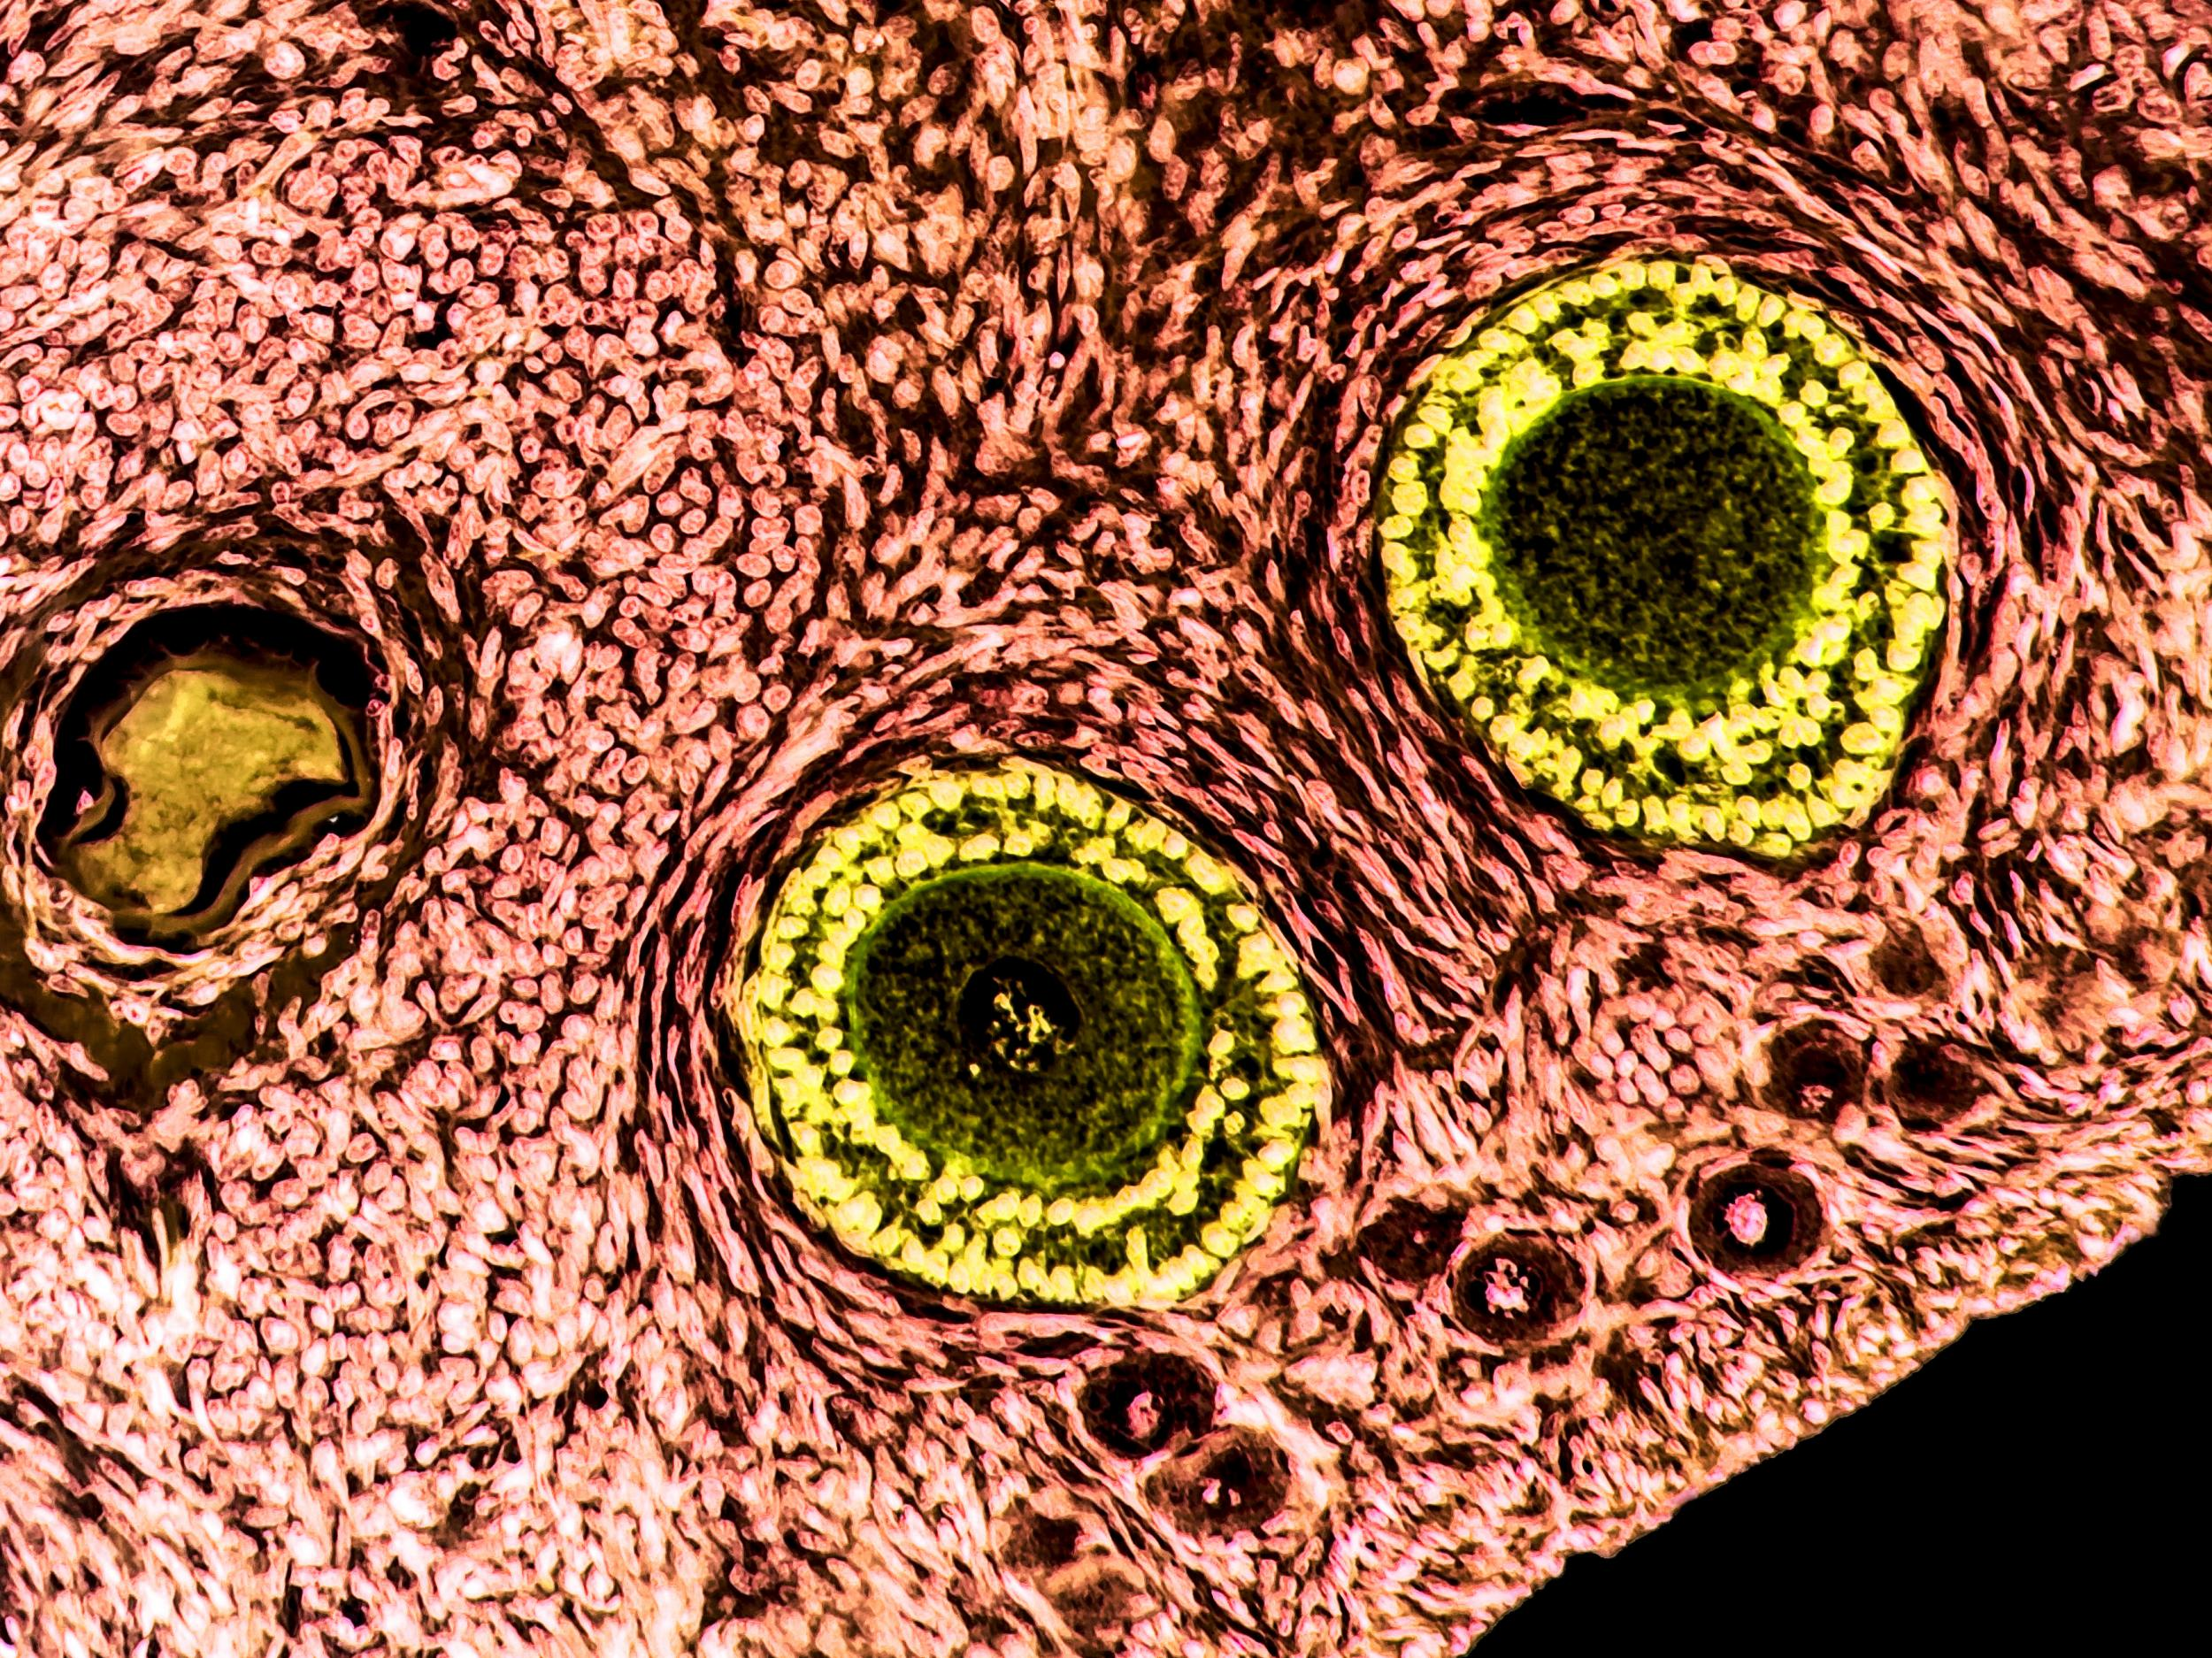 Artificial Ovary Could Allow Women To Become Mothers After Cancer